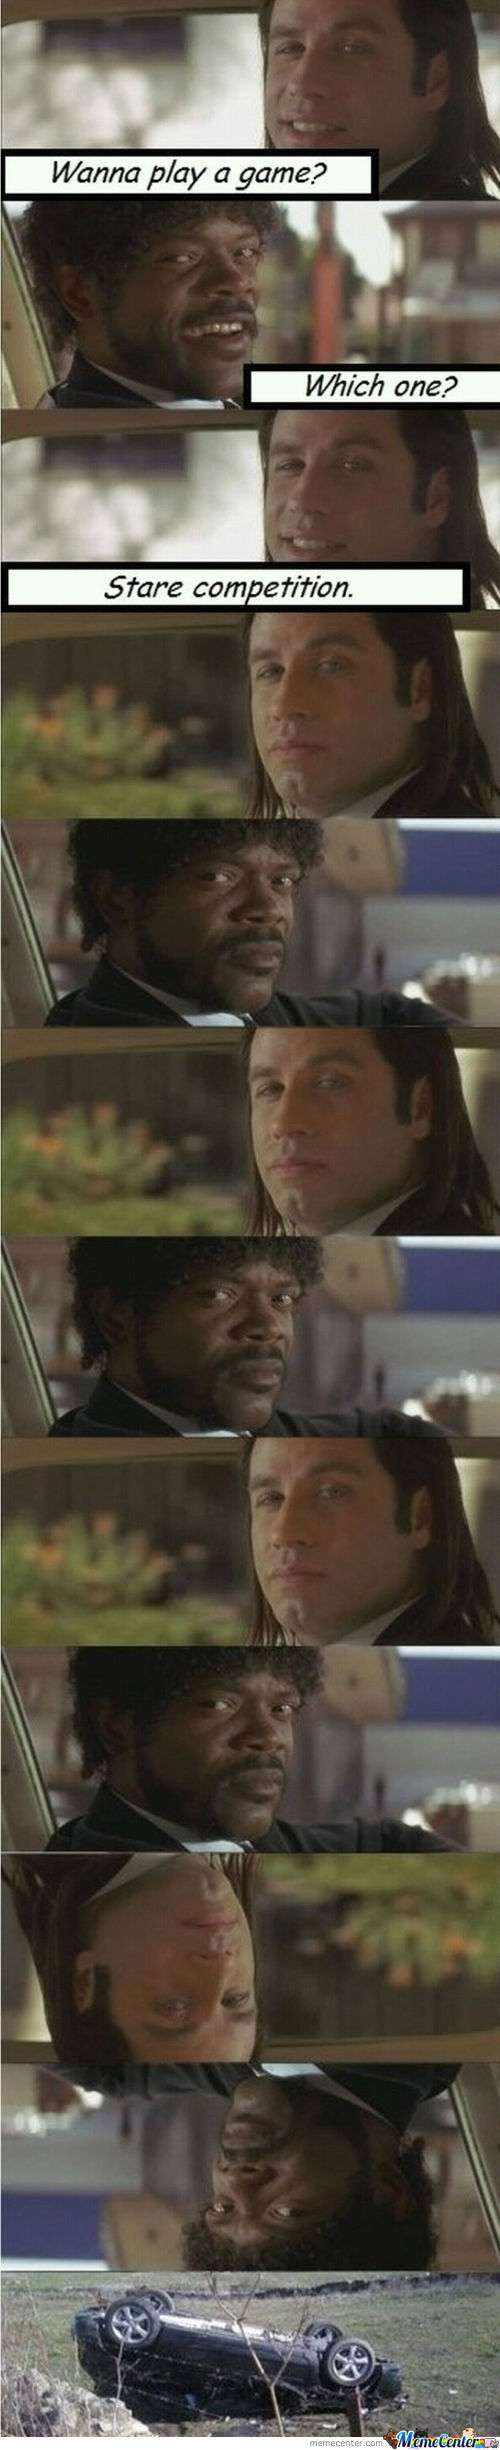 Pulp Fiction Stare Competition